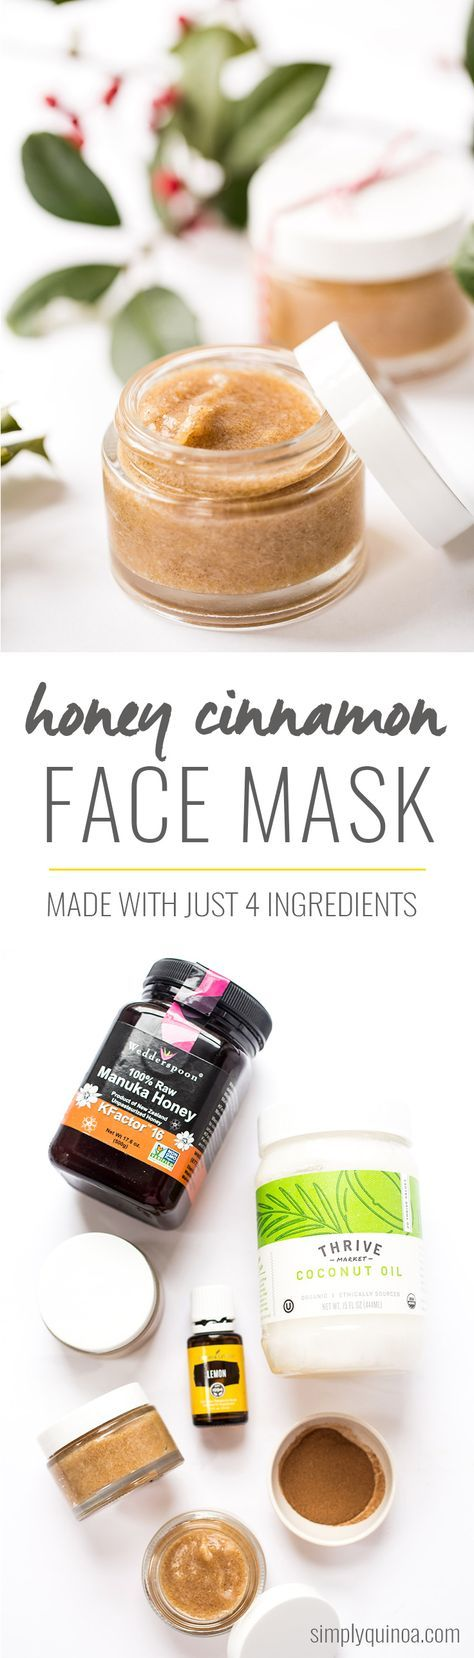 This DIY Honey Cinnamon Face Mask uses just four ingredients and is AMAZING! Smells so nice, is awesome for the skin and gives you a nice glow after you use it.